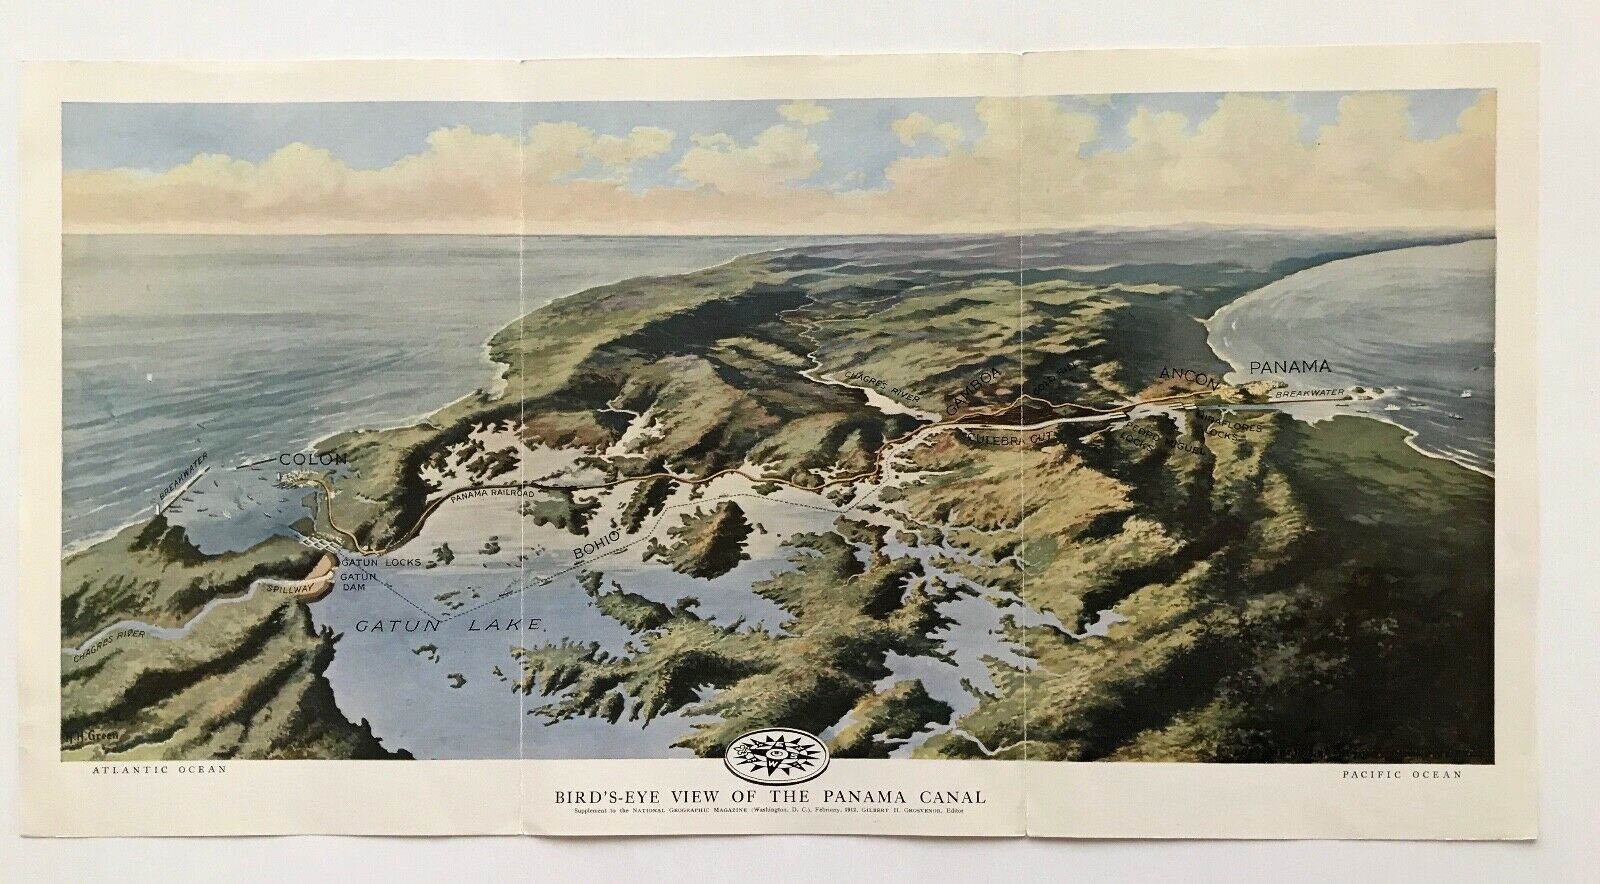 1912 Bird s-Eye View Of The Panama Canal Fold-out - 3D View - $8.00